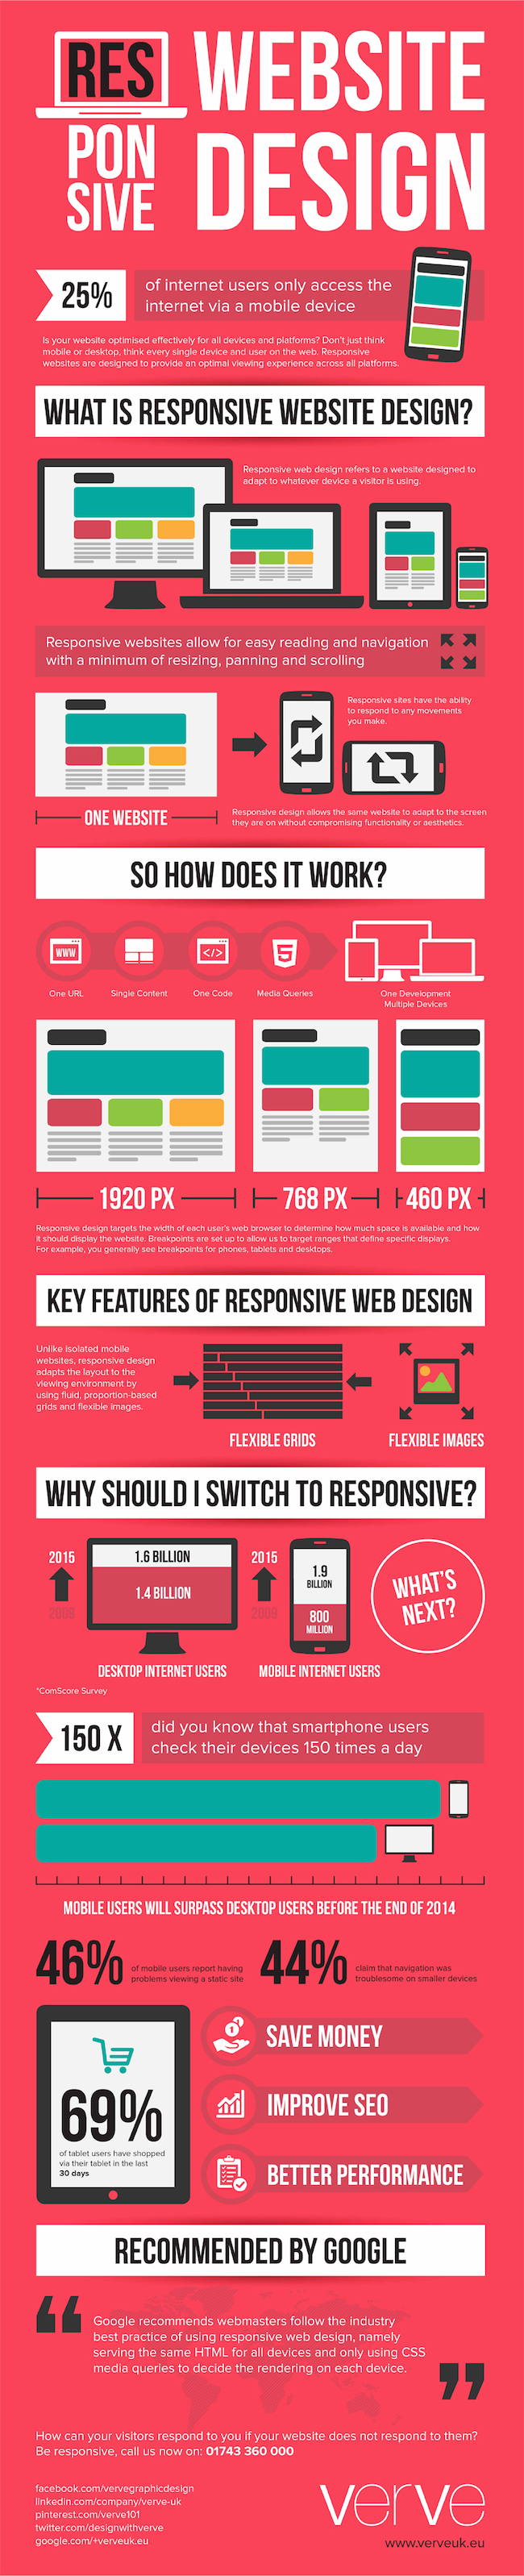 How-Responsive-Web-Design-Works-Infographic-wallpaper-wp5008689